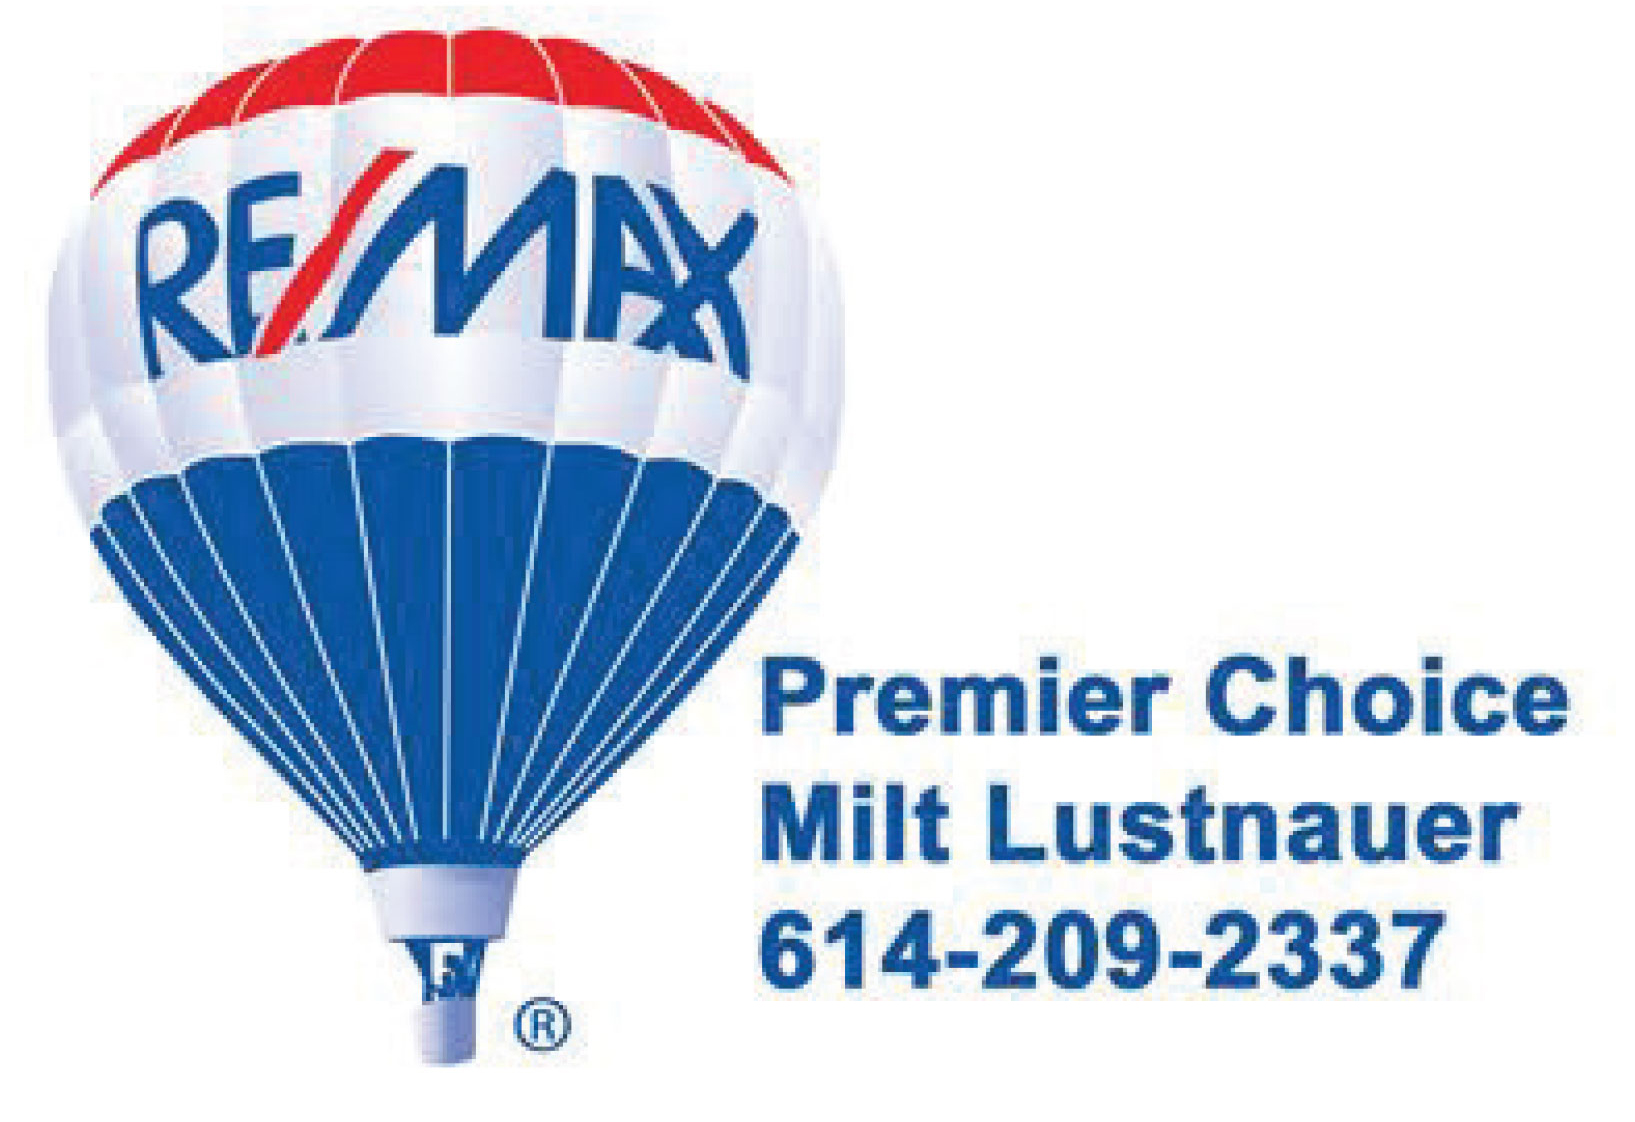 Re/Max Premier Choice - Milt Lustnauer